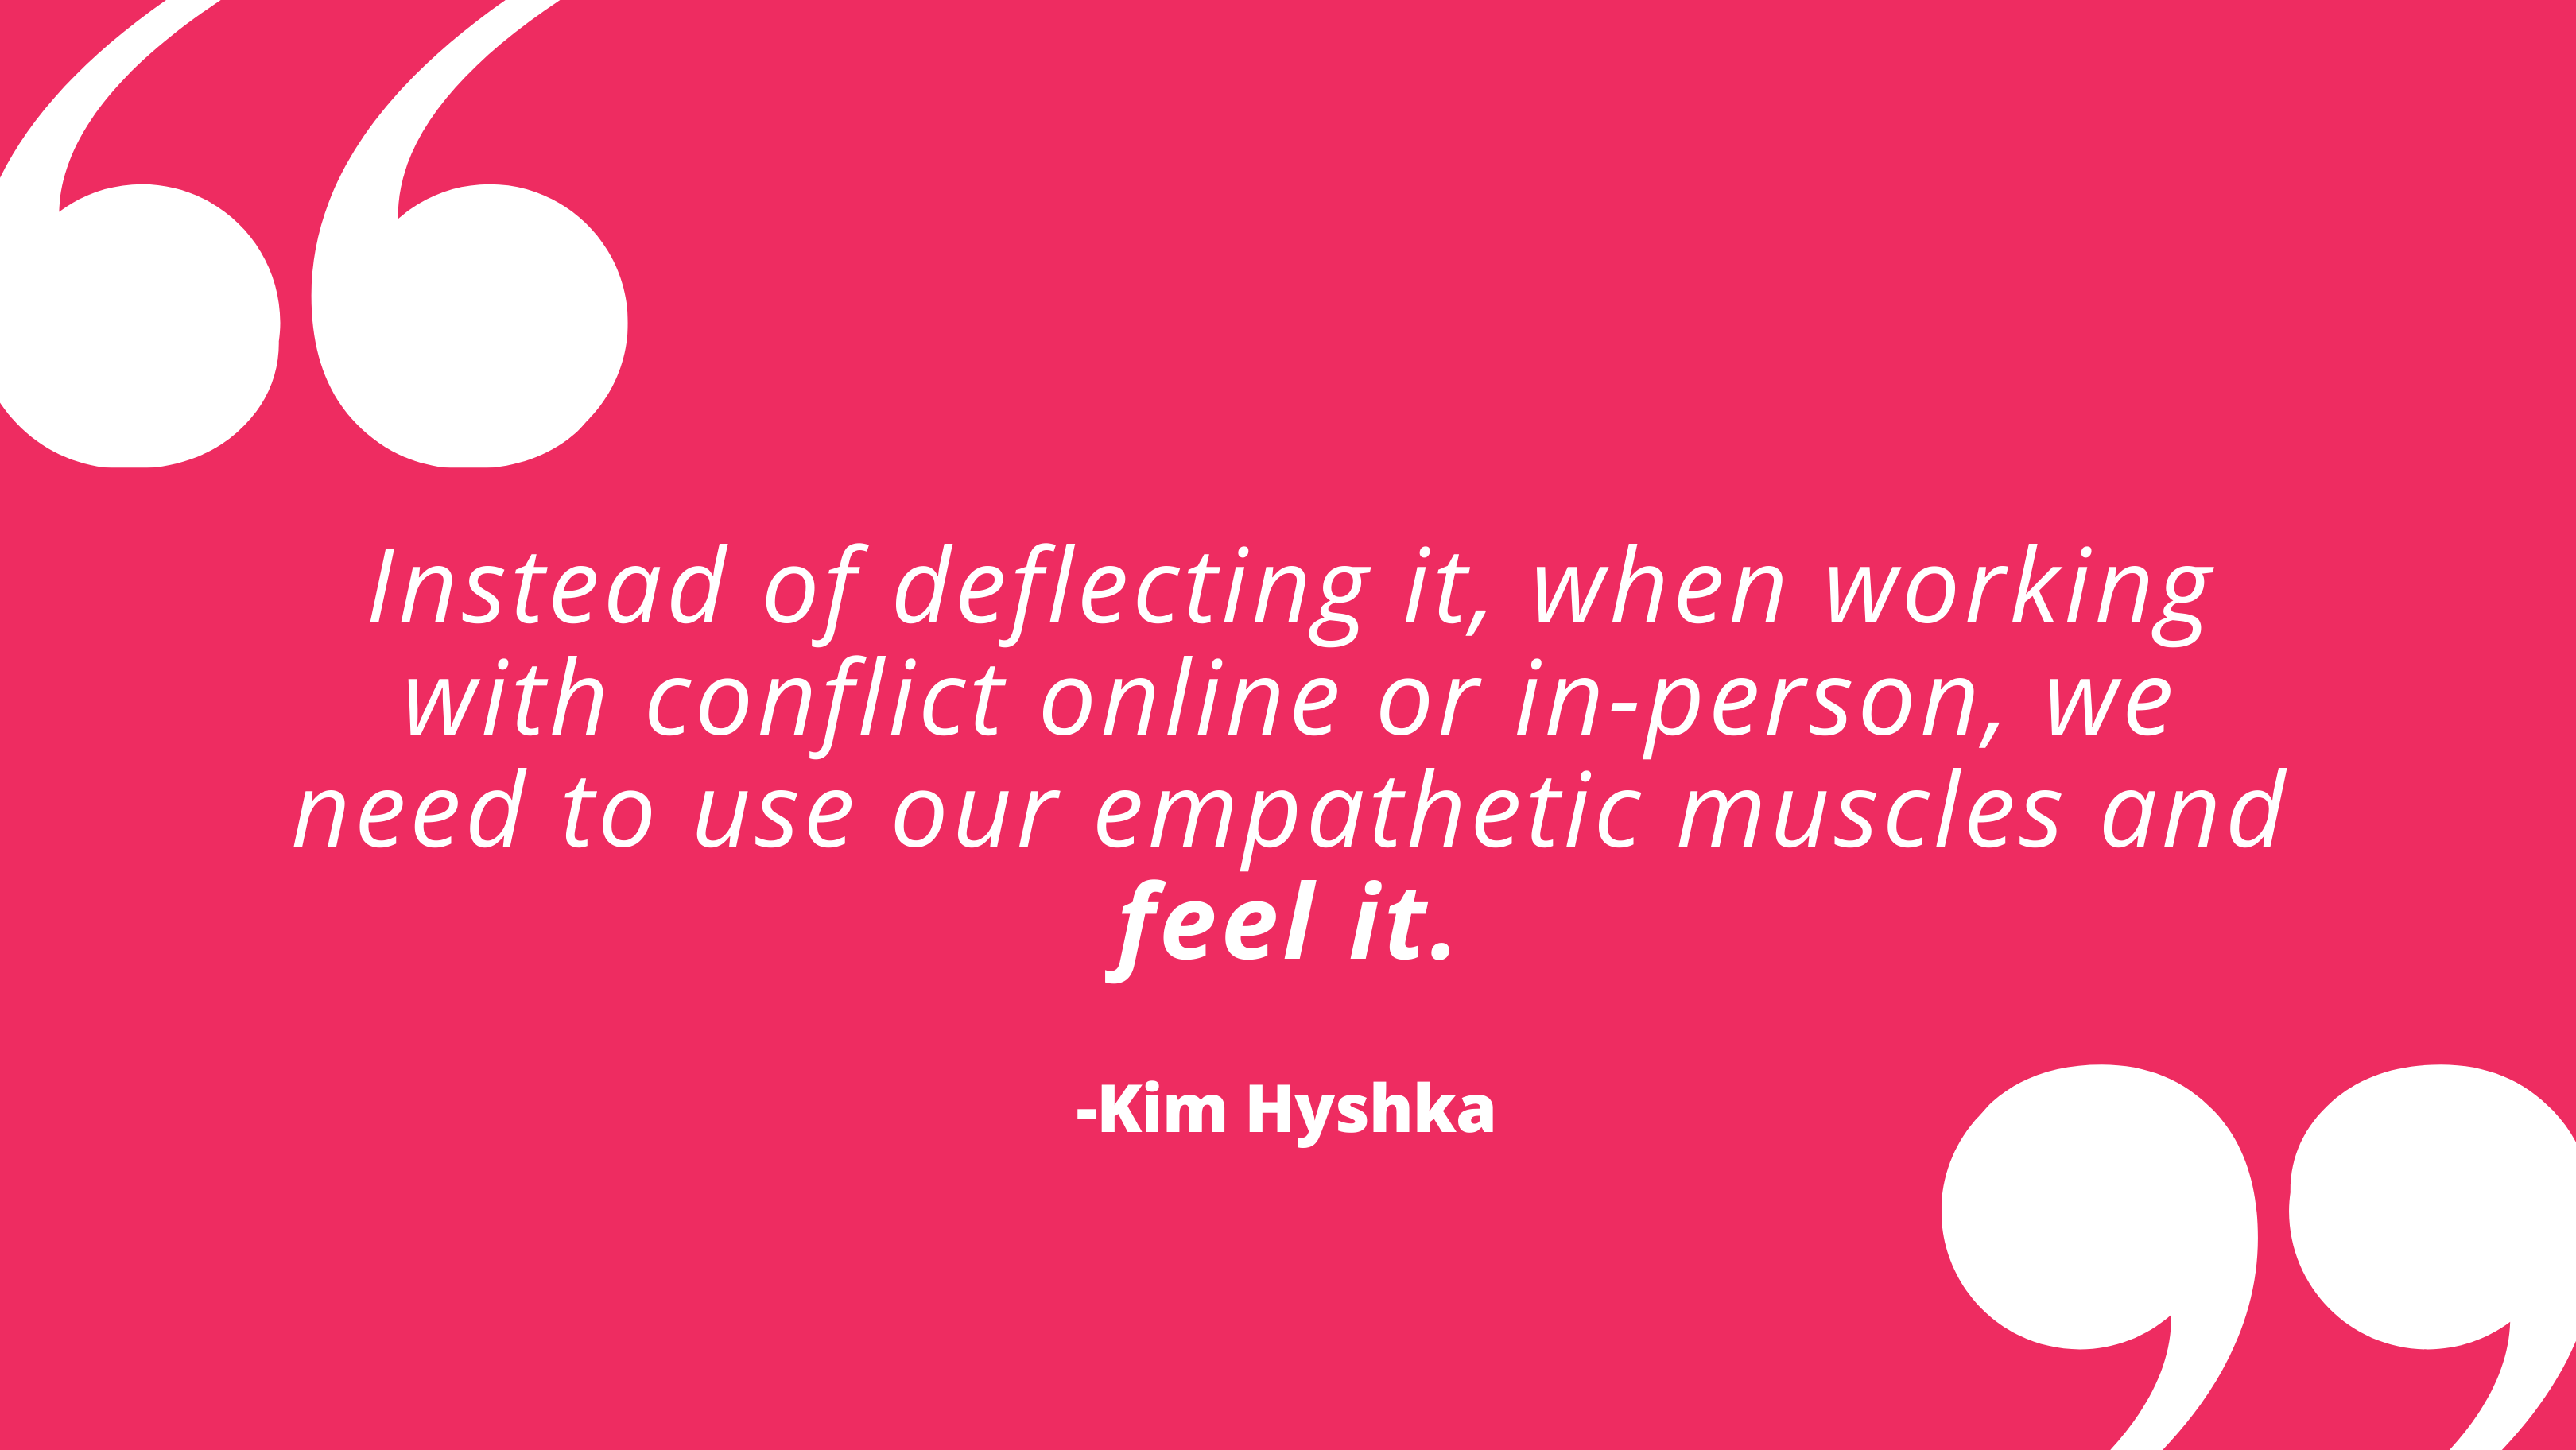 Top 5 Tips for Diffusing Conflict During Online Stakeholder Engagement (1)